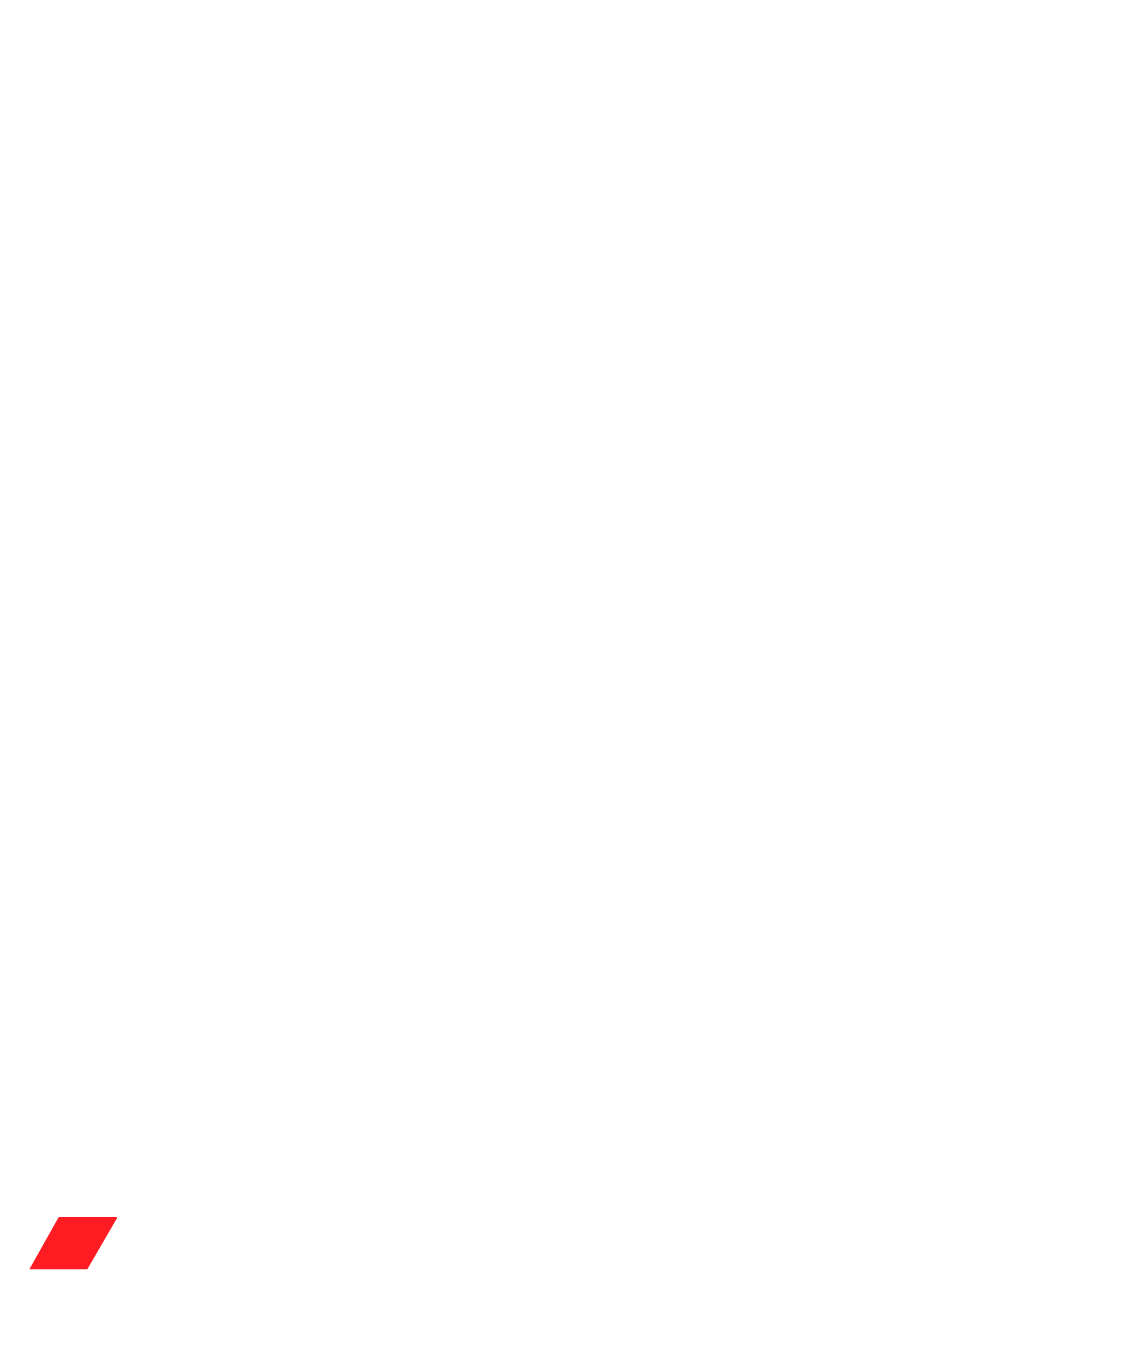 crank-software-ametek-stacked-white-1